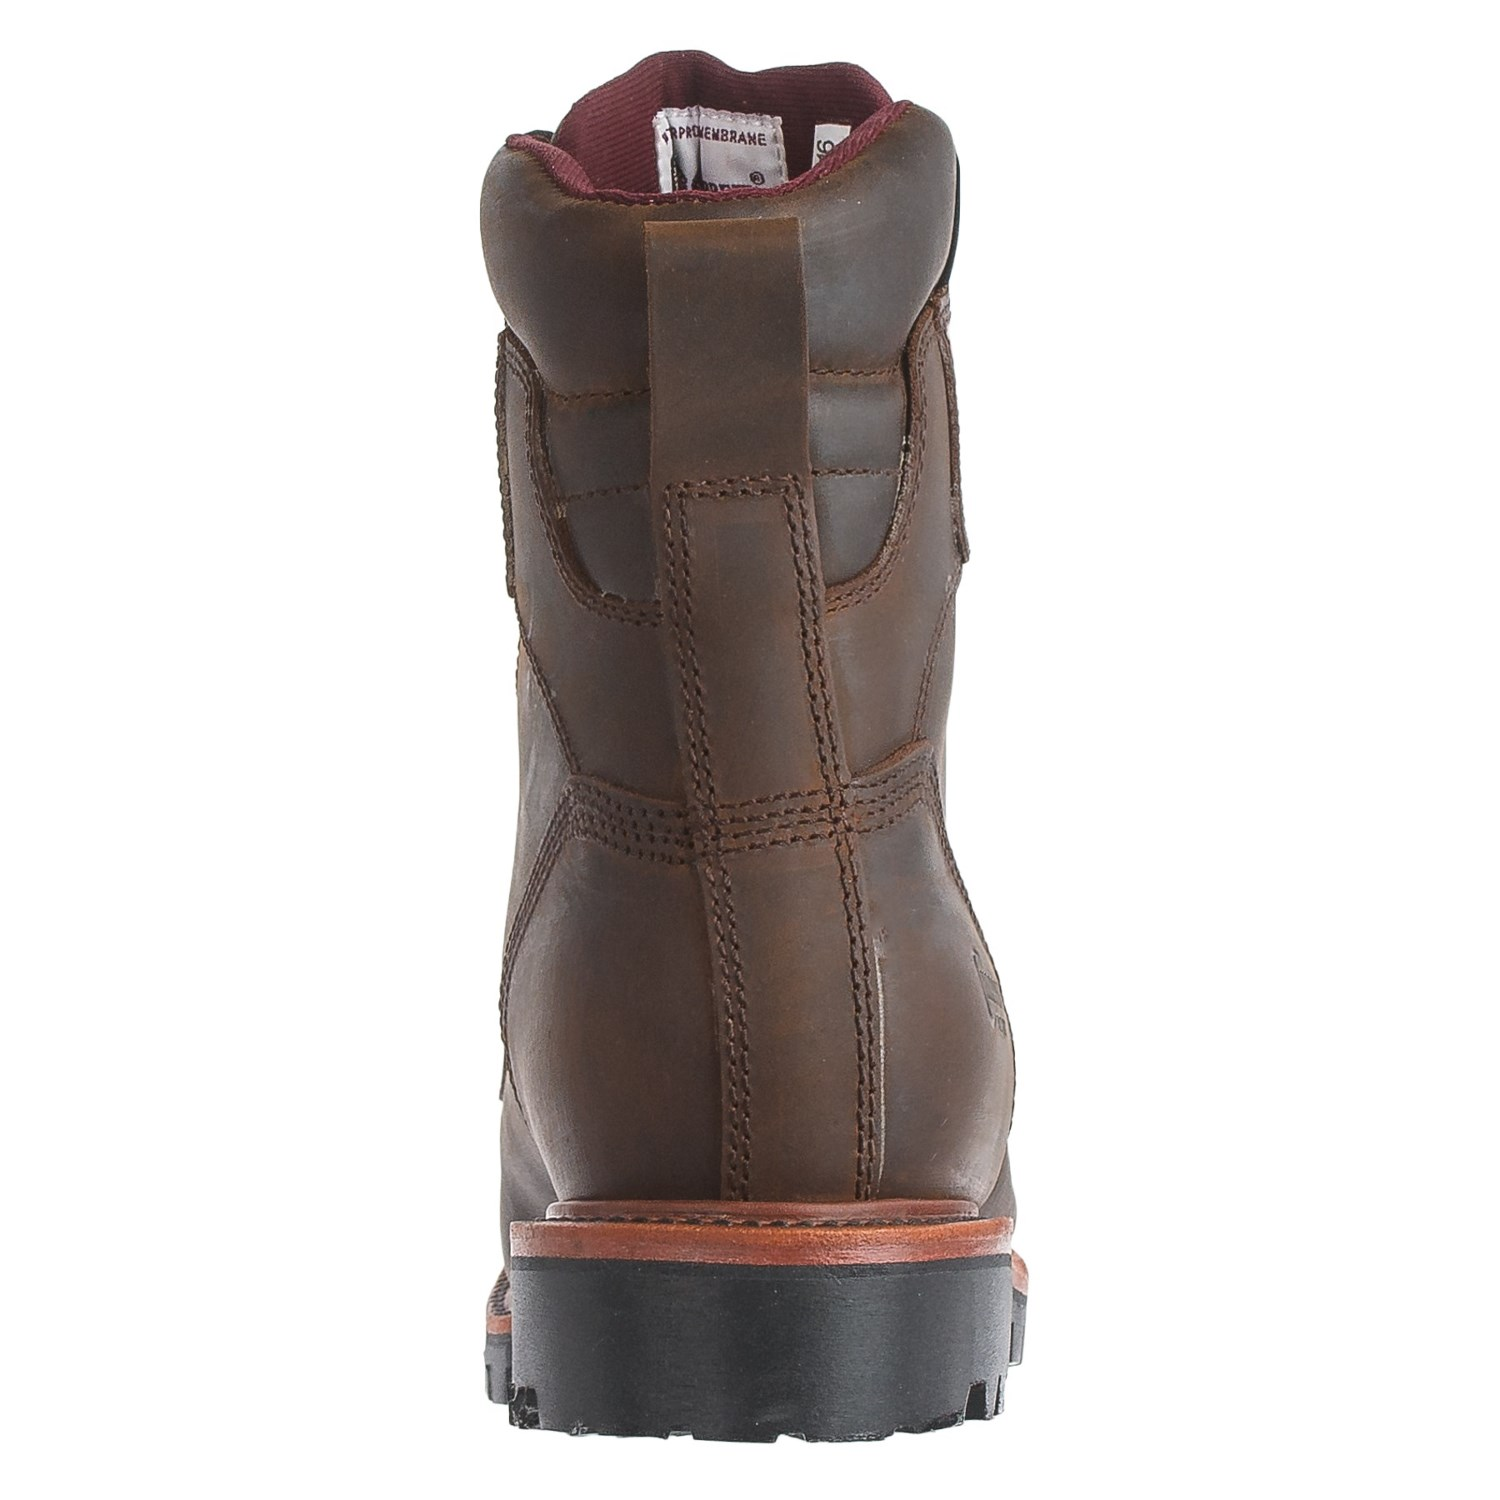 chippewa bay buddhist single men Chippewa boots has been  and the company uses only the finest materials and workmanship as an homage to the men and women who have built the chippewa.